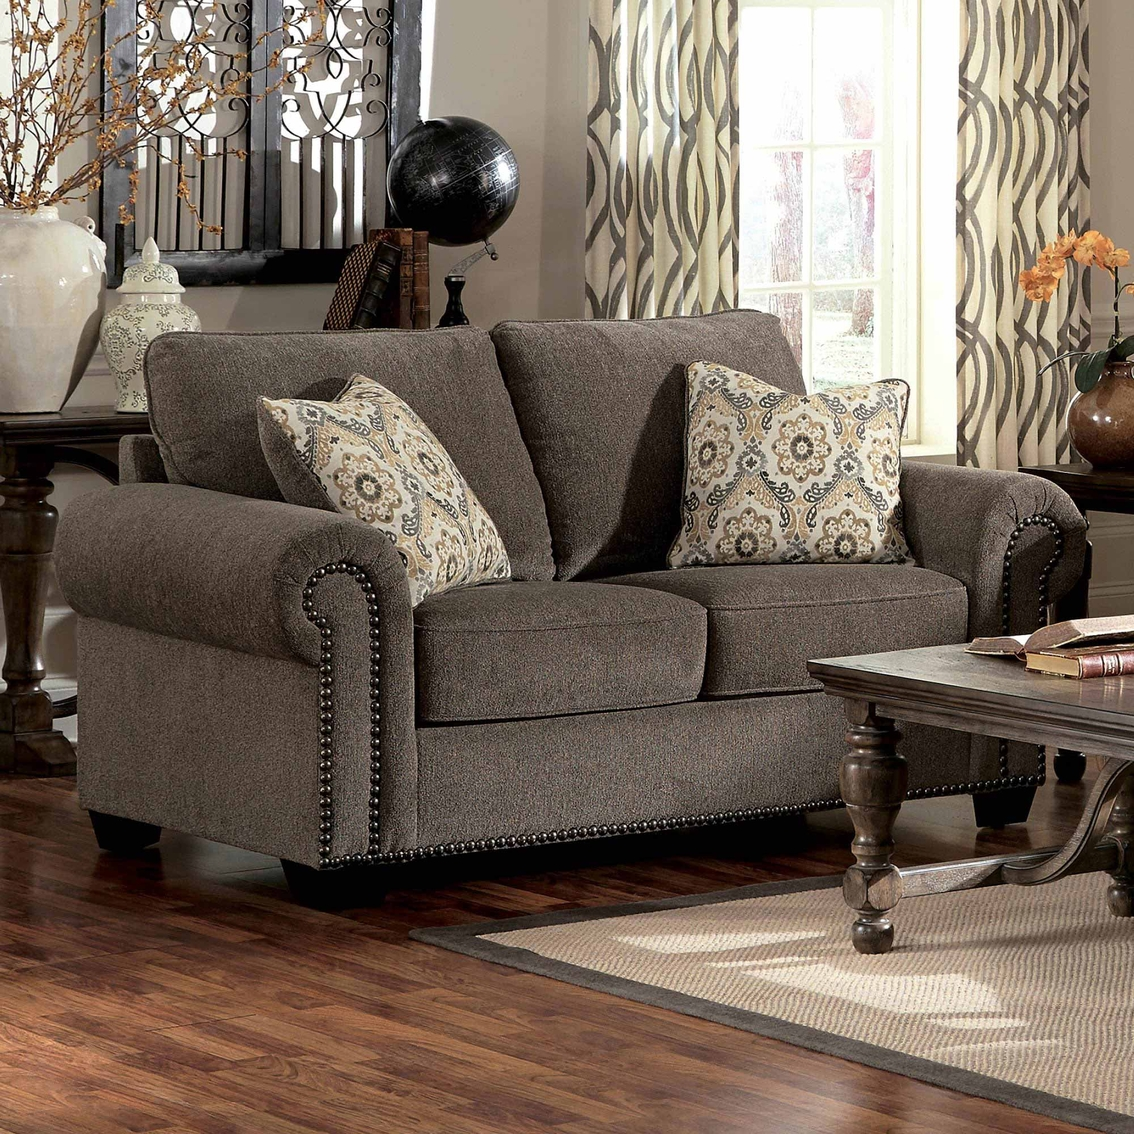 Emelen Sofa And Loveseat Benchcraft Emelen Loveseat Gray Sofas Couches Home